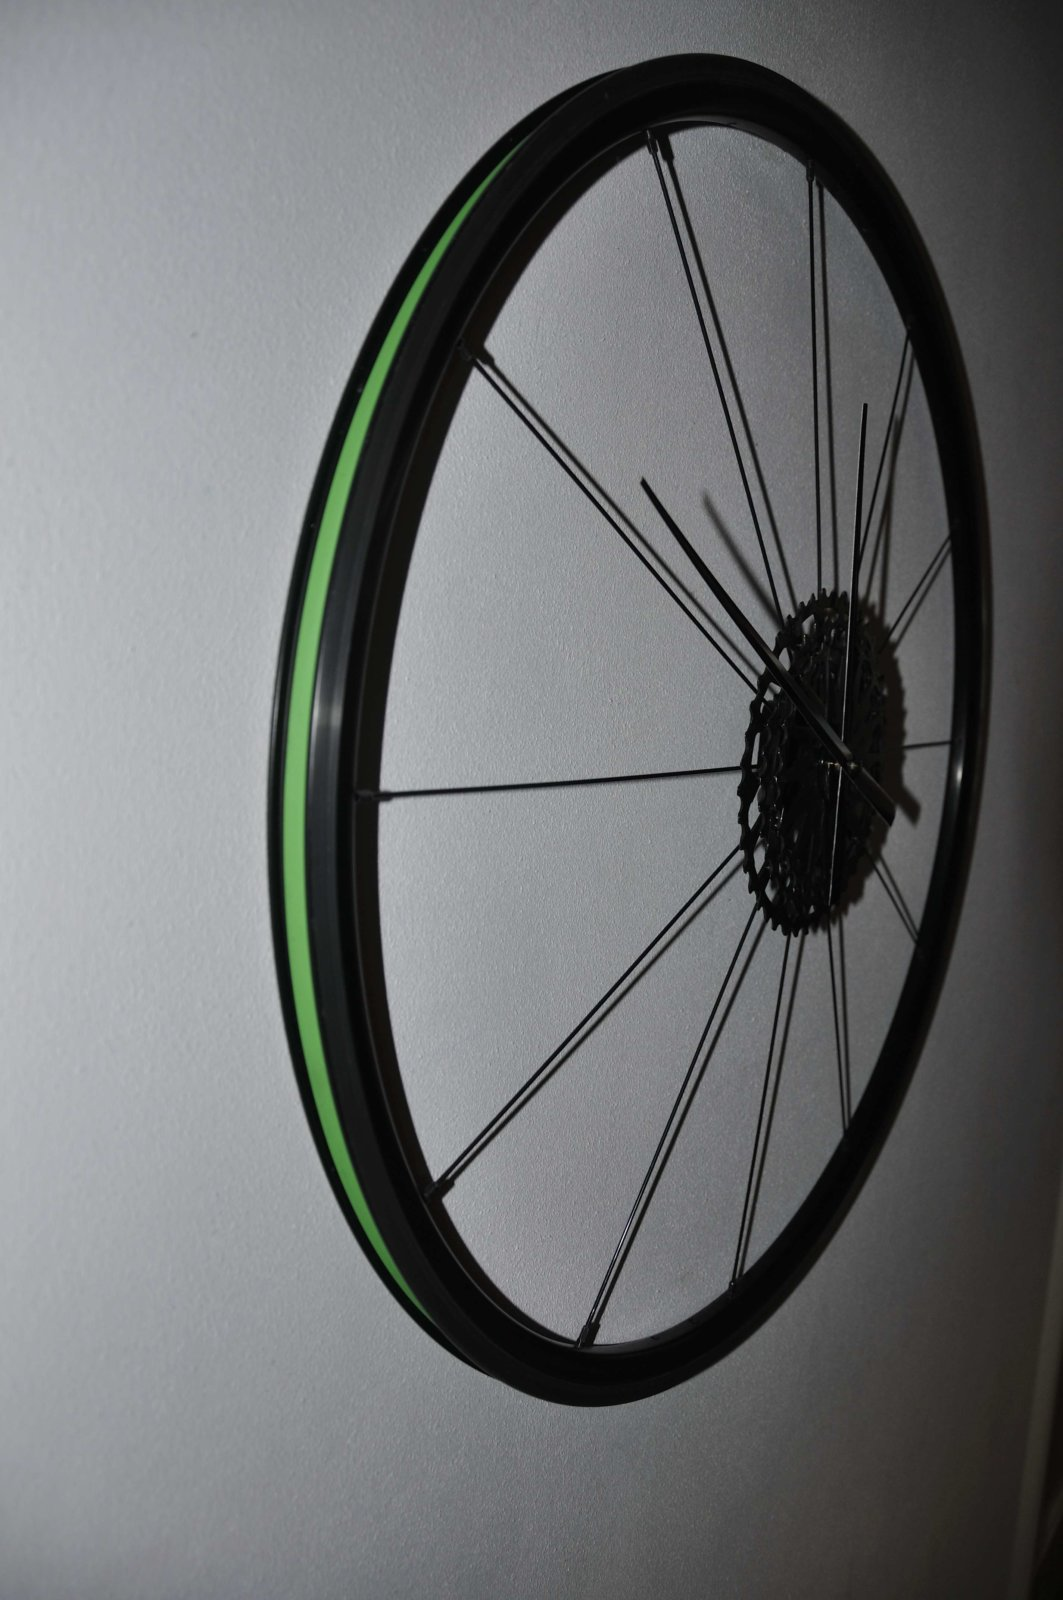 Detail Rim With Green Rimtape Sustainable Cyclingart Duurzaam Fietskunst